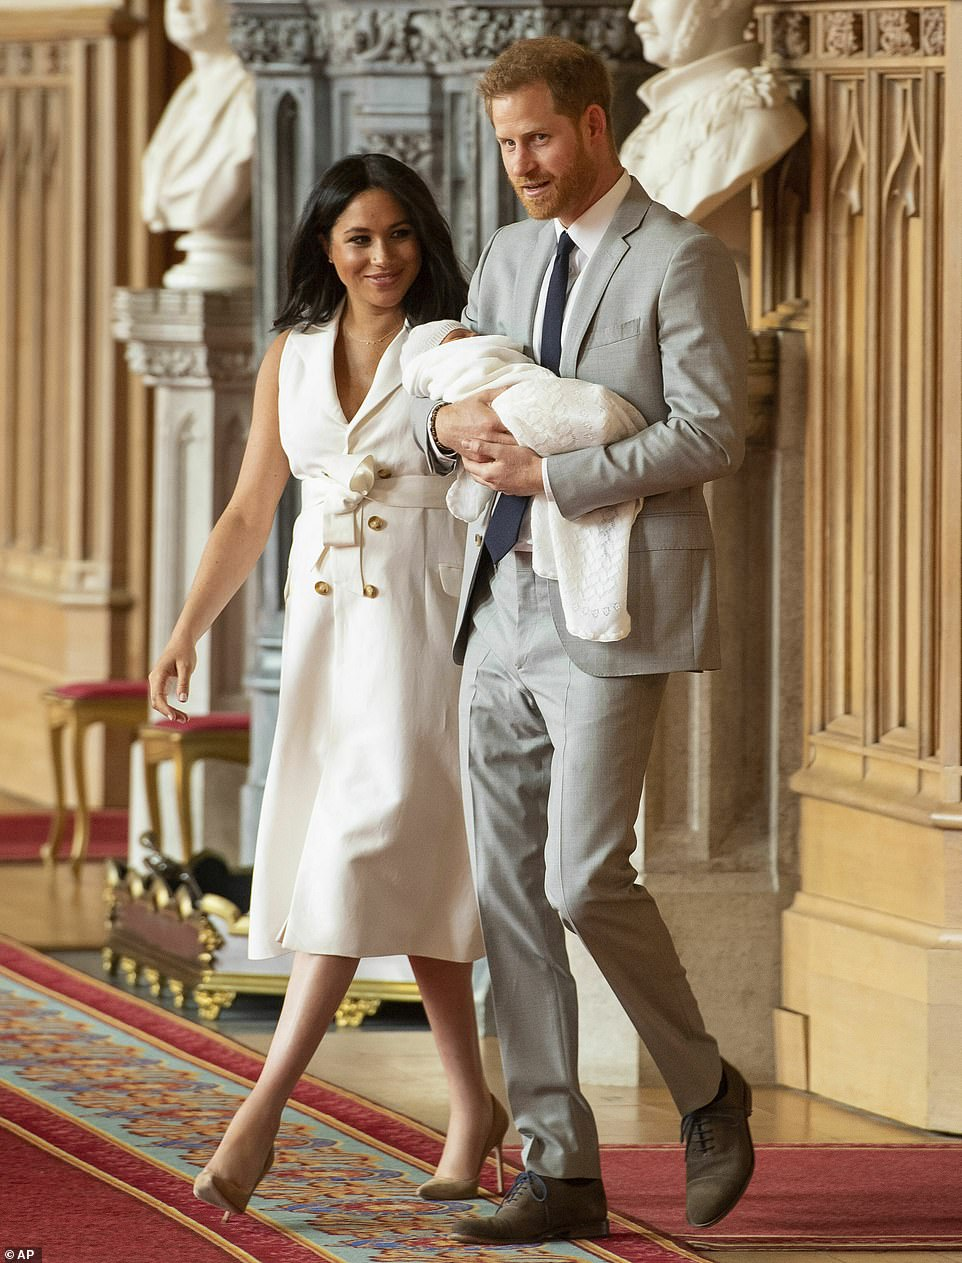 Prince Harry and Meghan Markle debut Baby Sussex